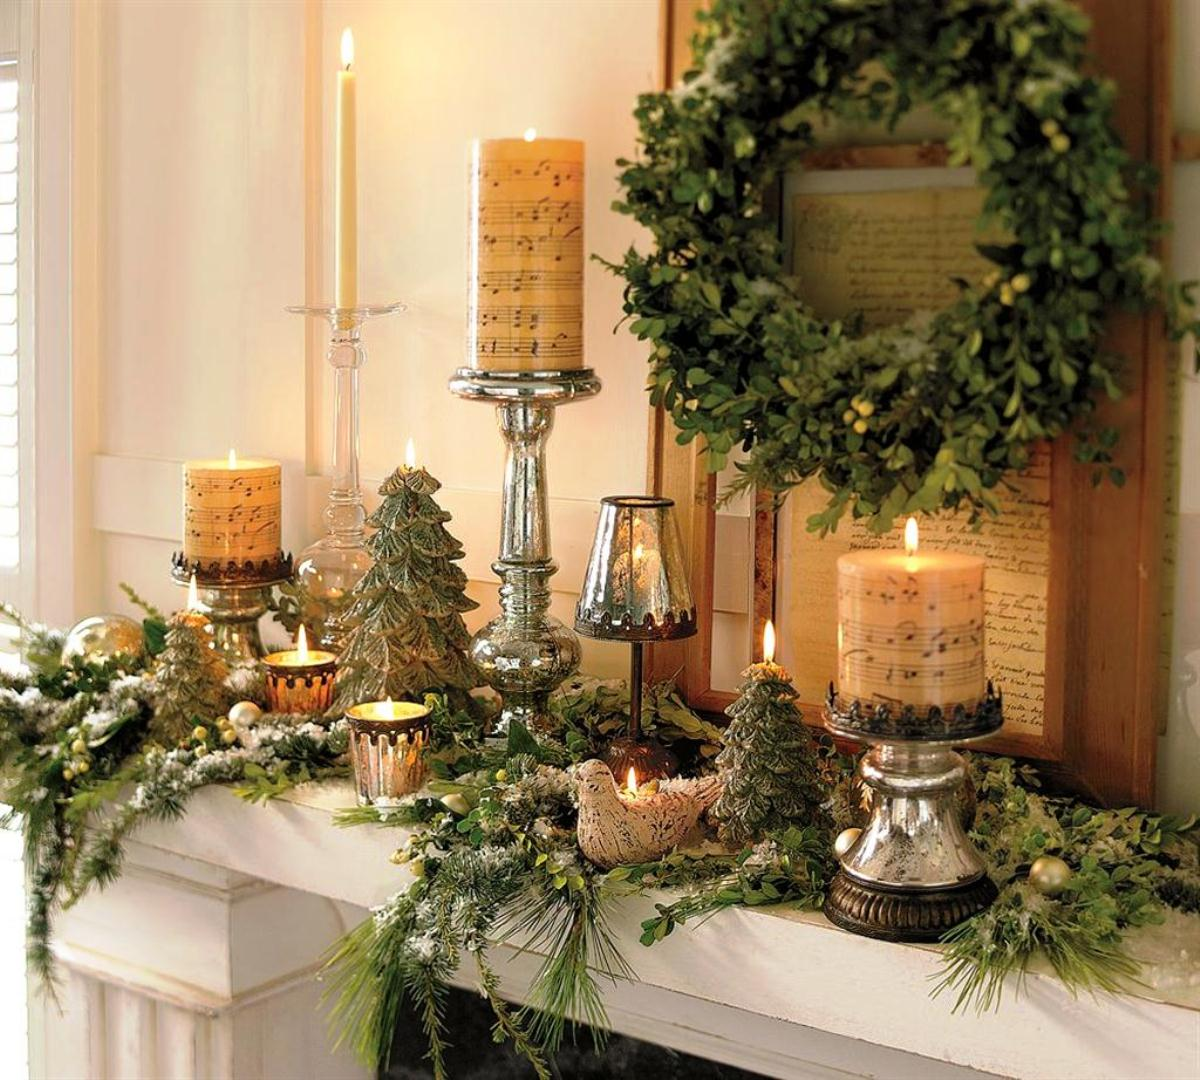 50 Best Indoor Decoration Ideas For Christmas In 2021